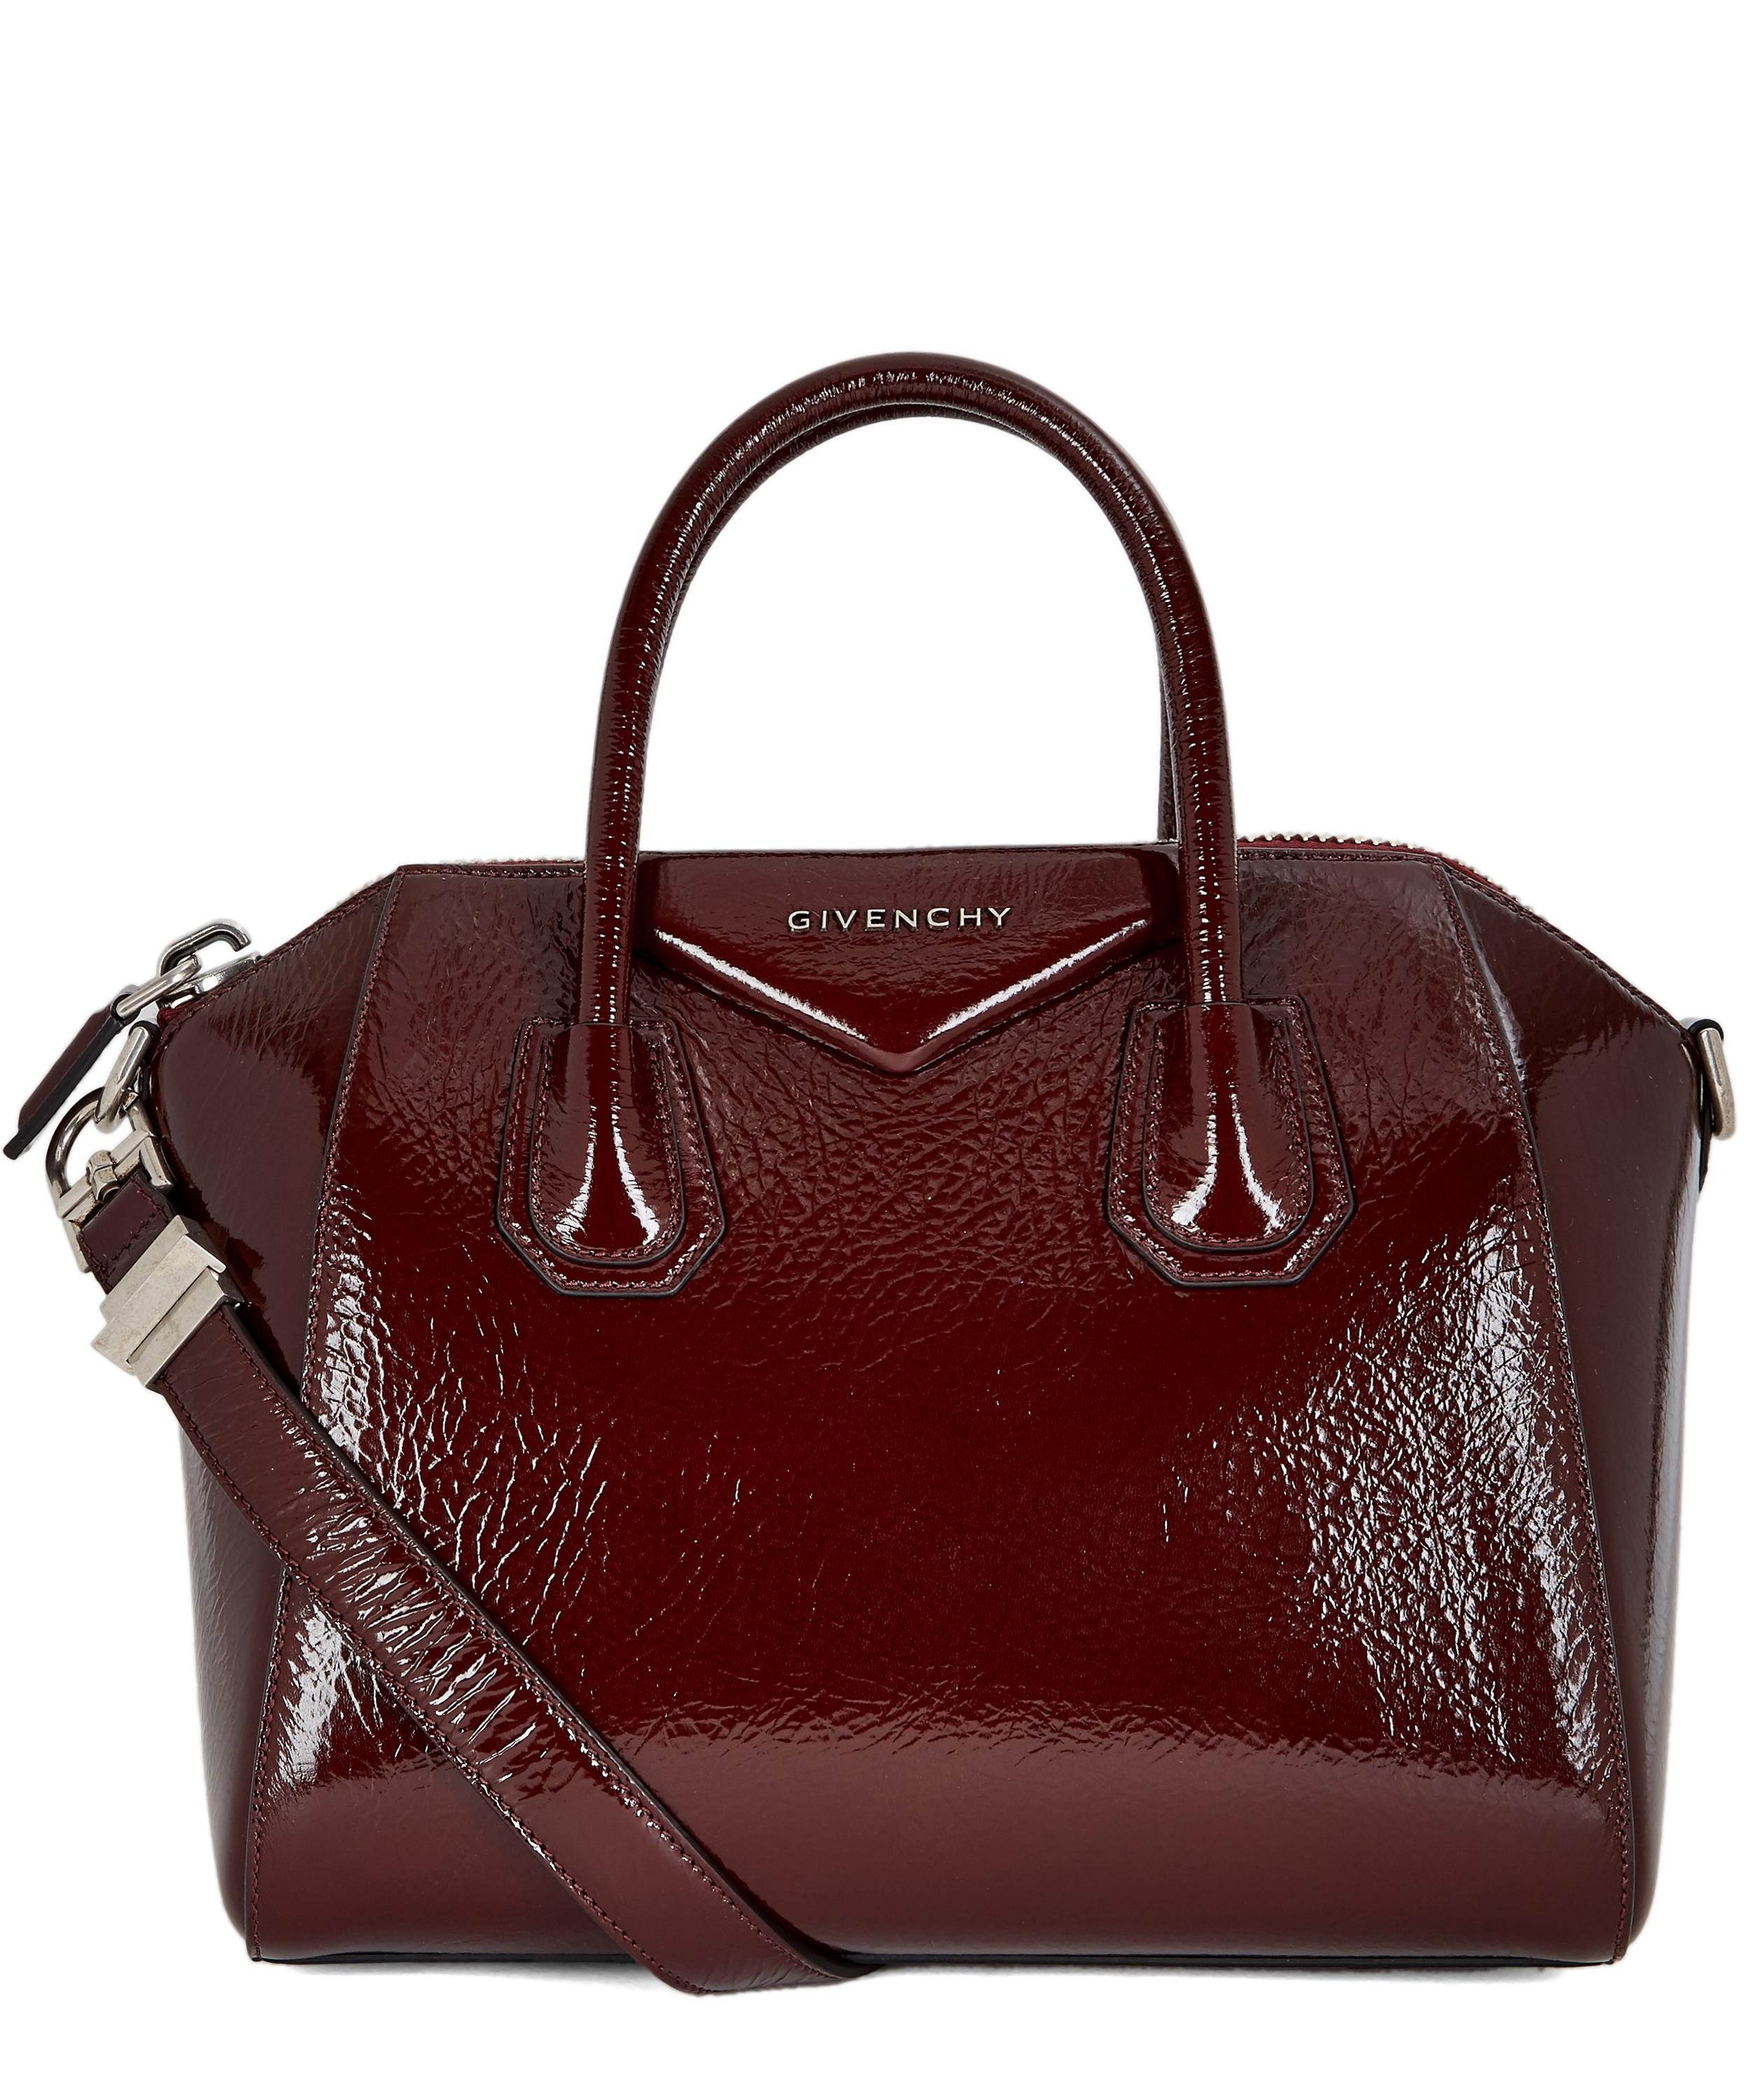 15 Feminine Looks With Patent Leather Bags 15 Feminine Looks With Patent Leather Bags new foto